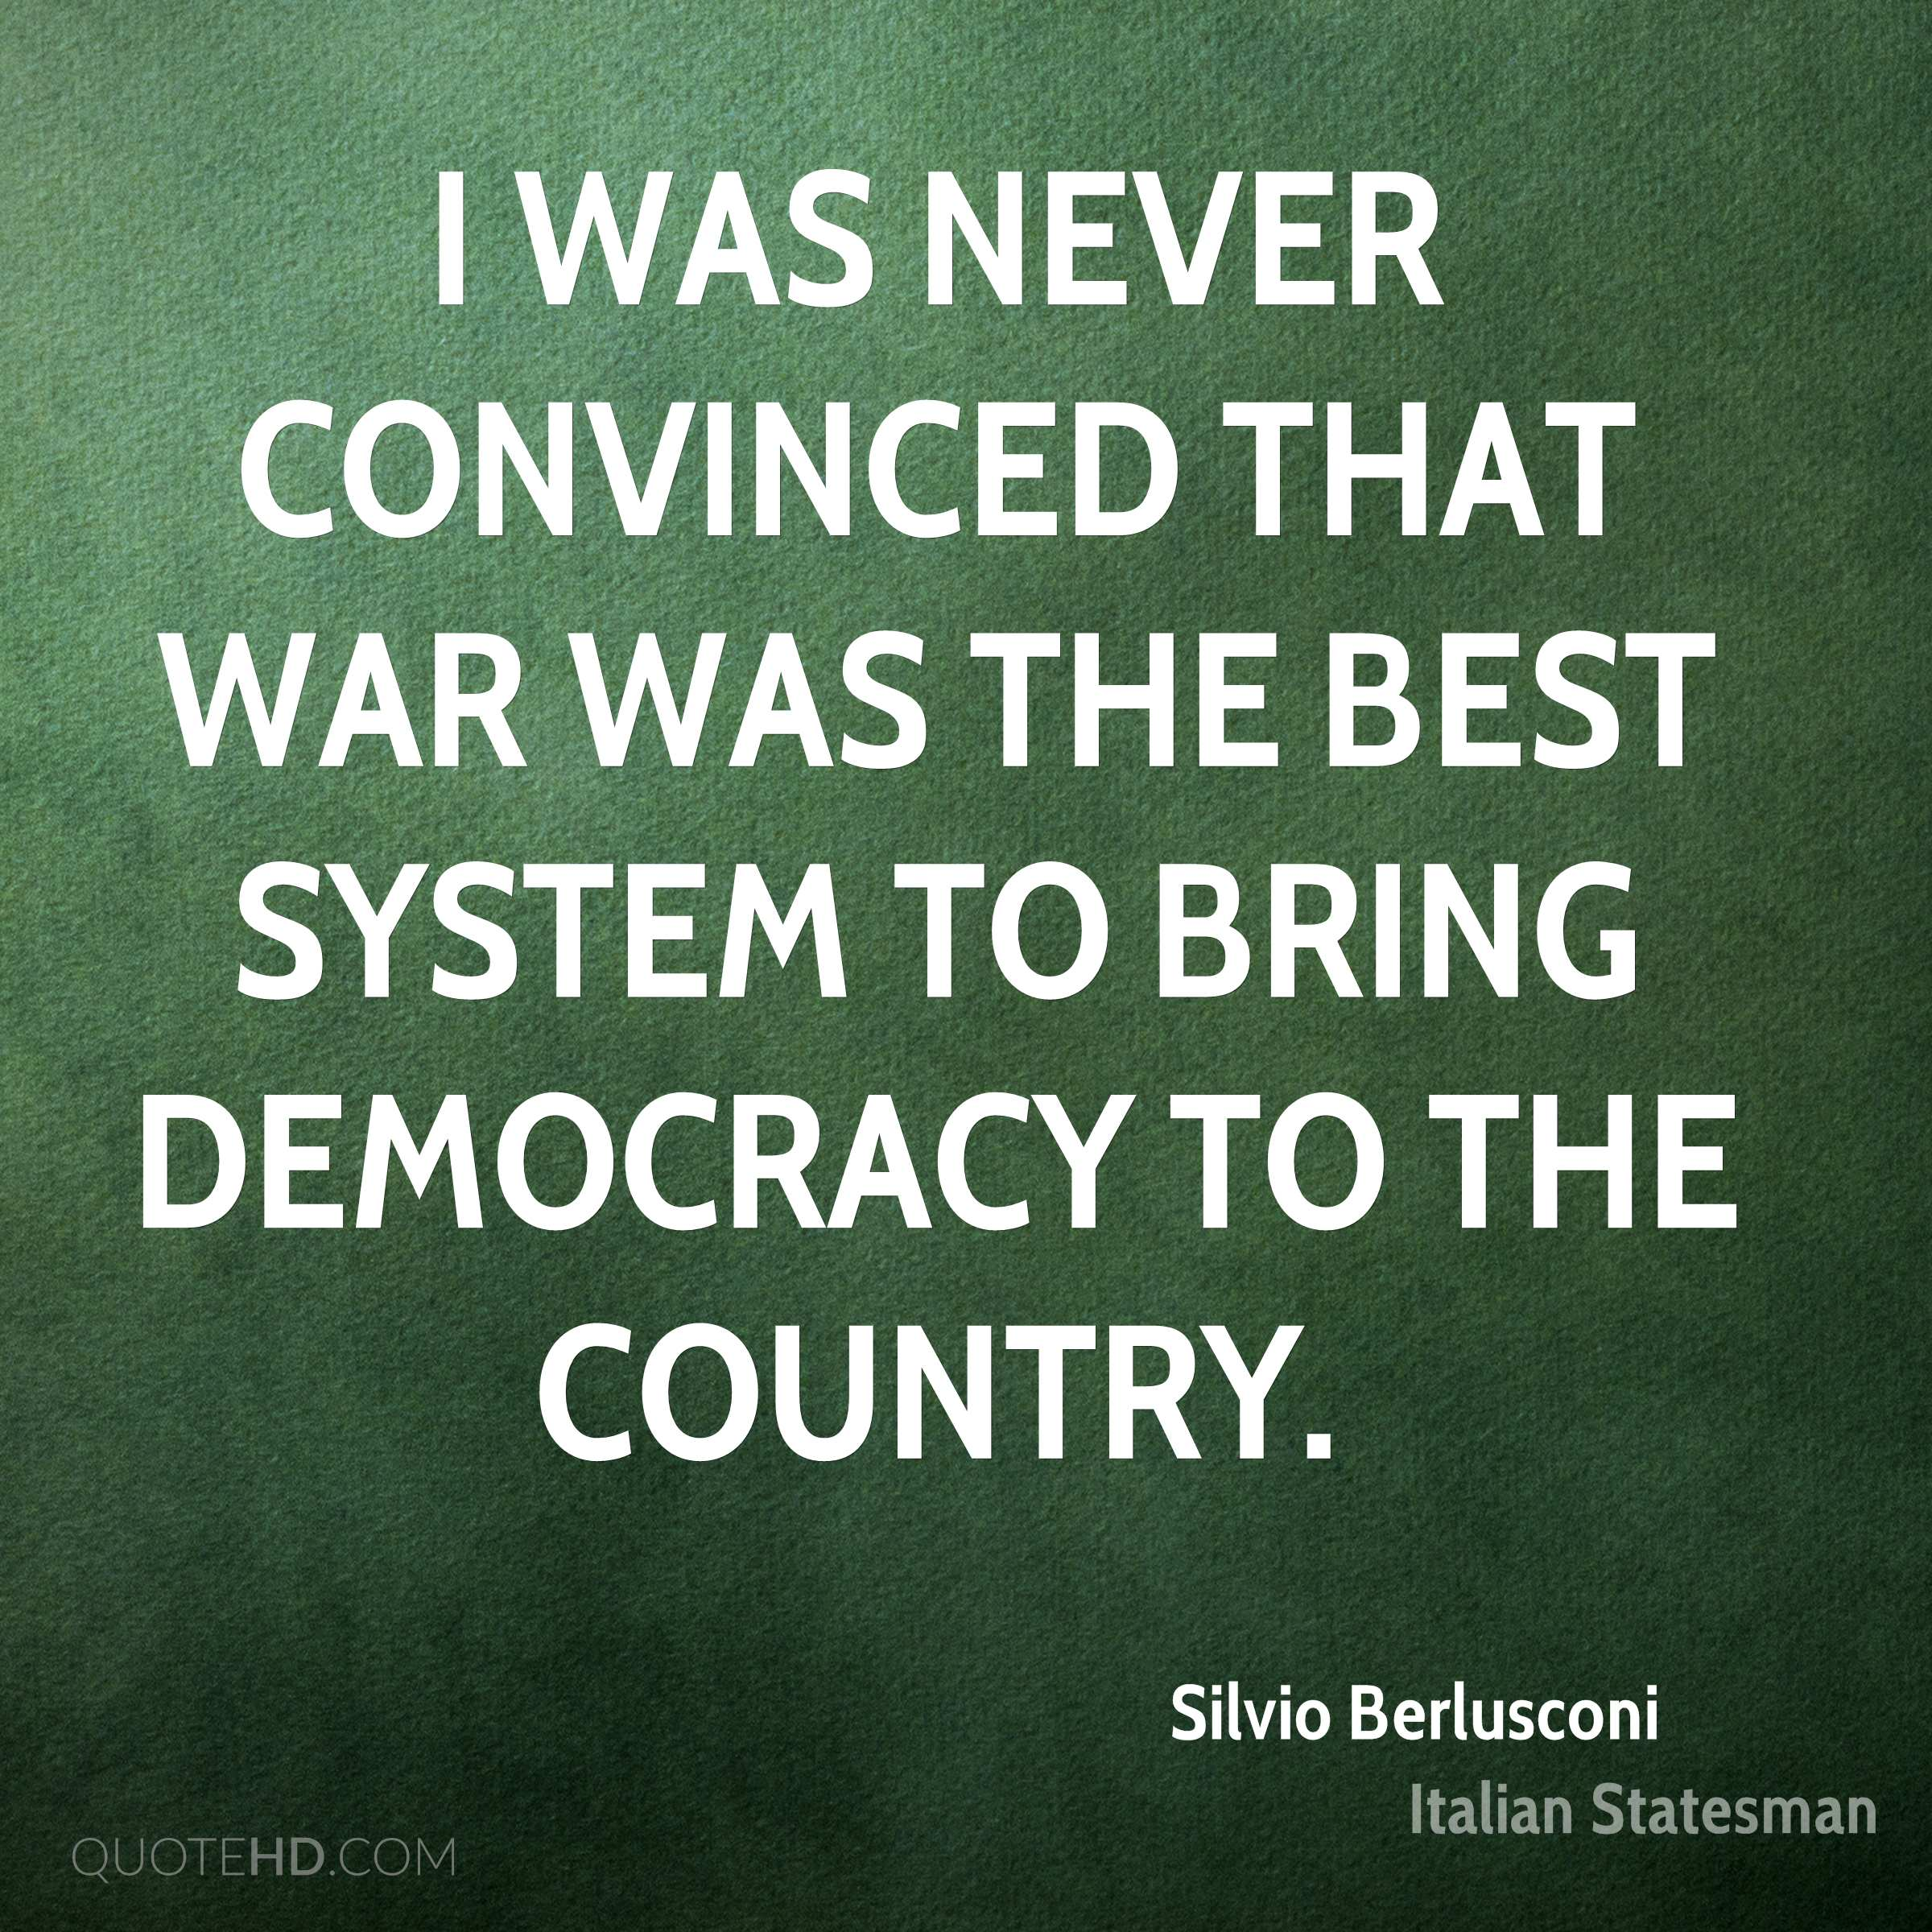 I was never convinced that war was the best system to bring democracy to the country.